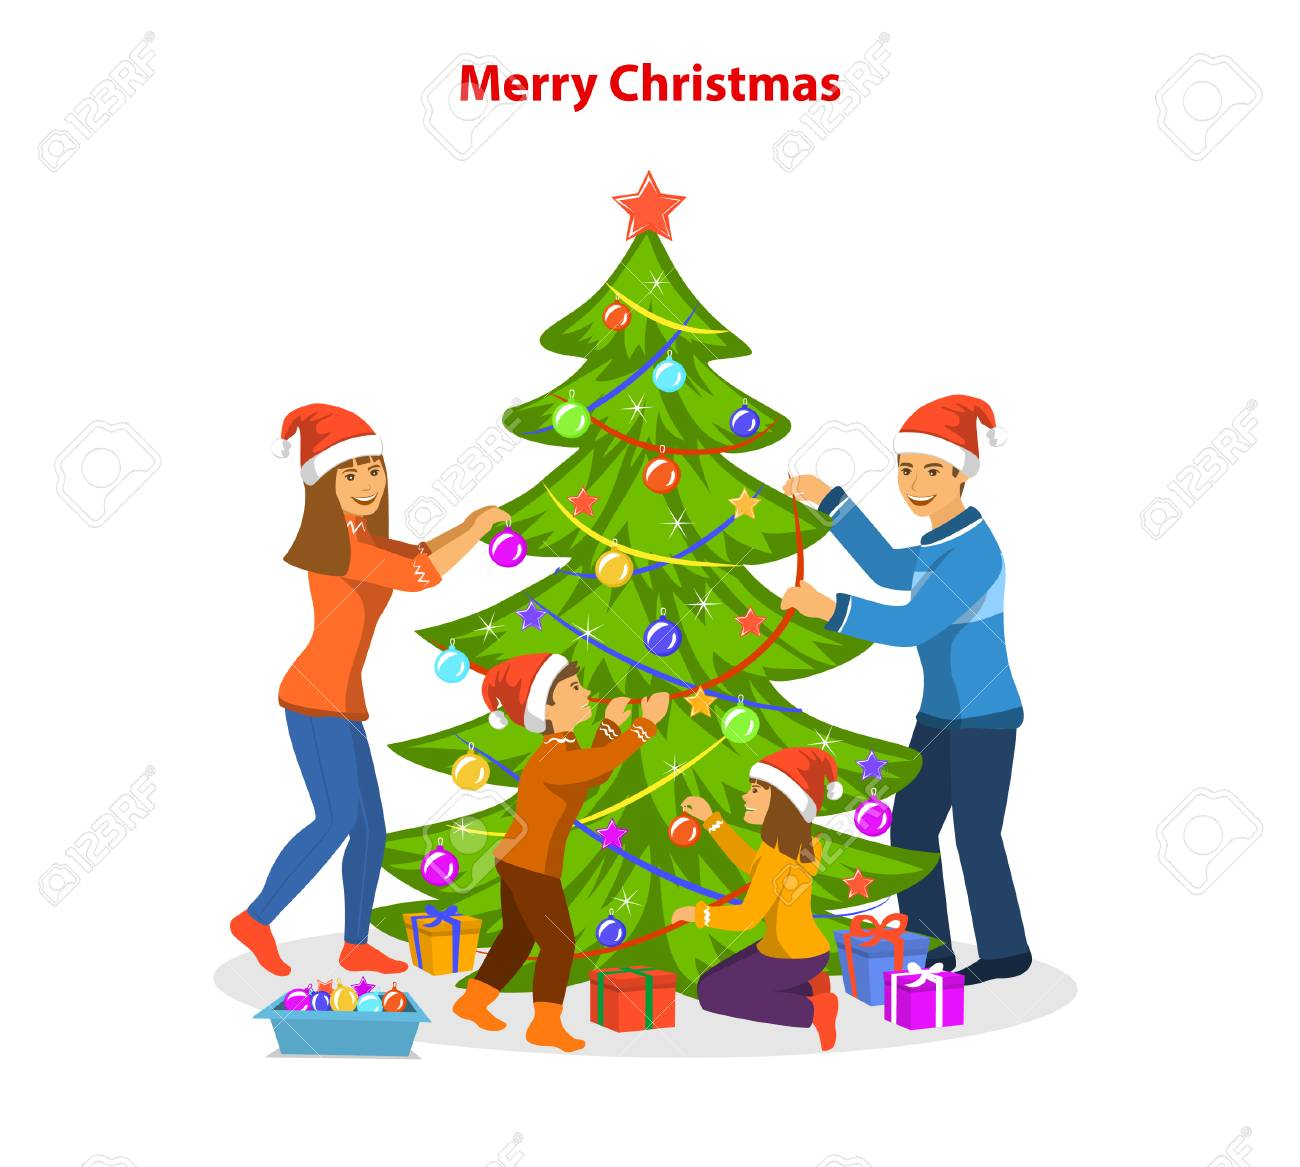 Family Decorating Together Christmas Tree Preparing To Celebrate Xmas Eve Stock Vector